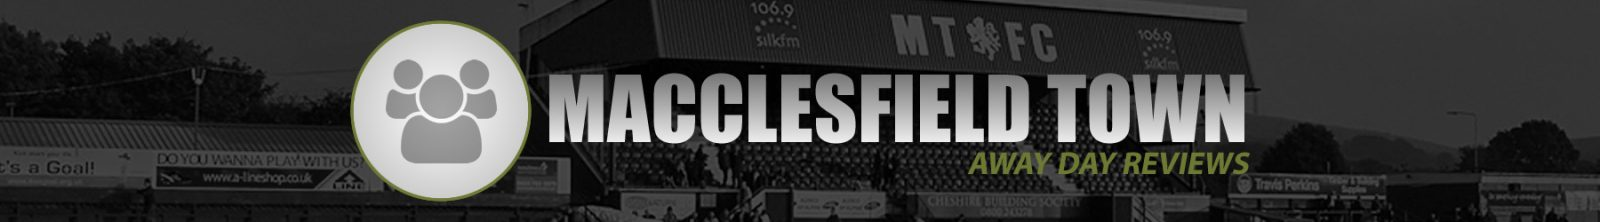 Review Macclesfield Town